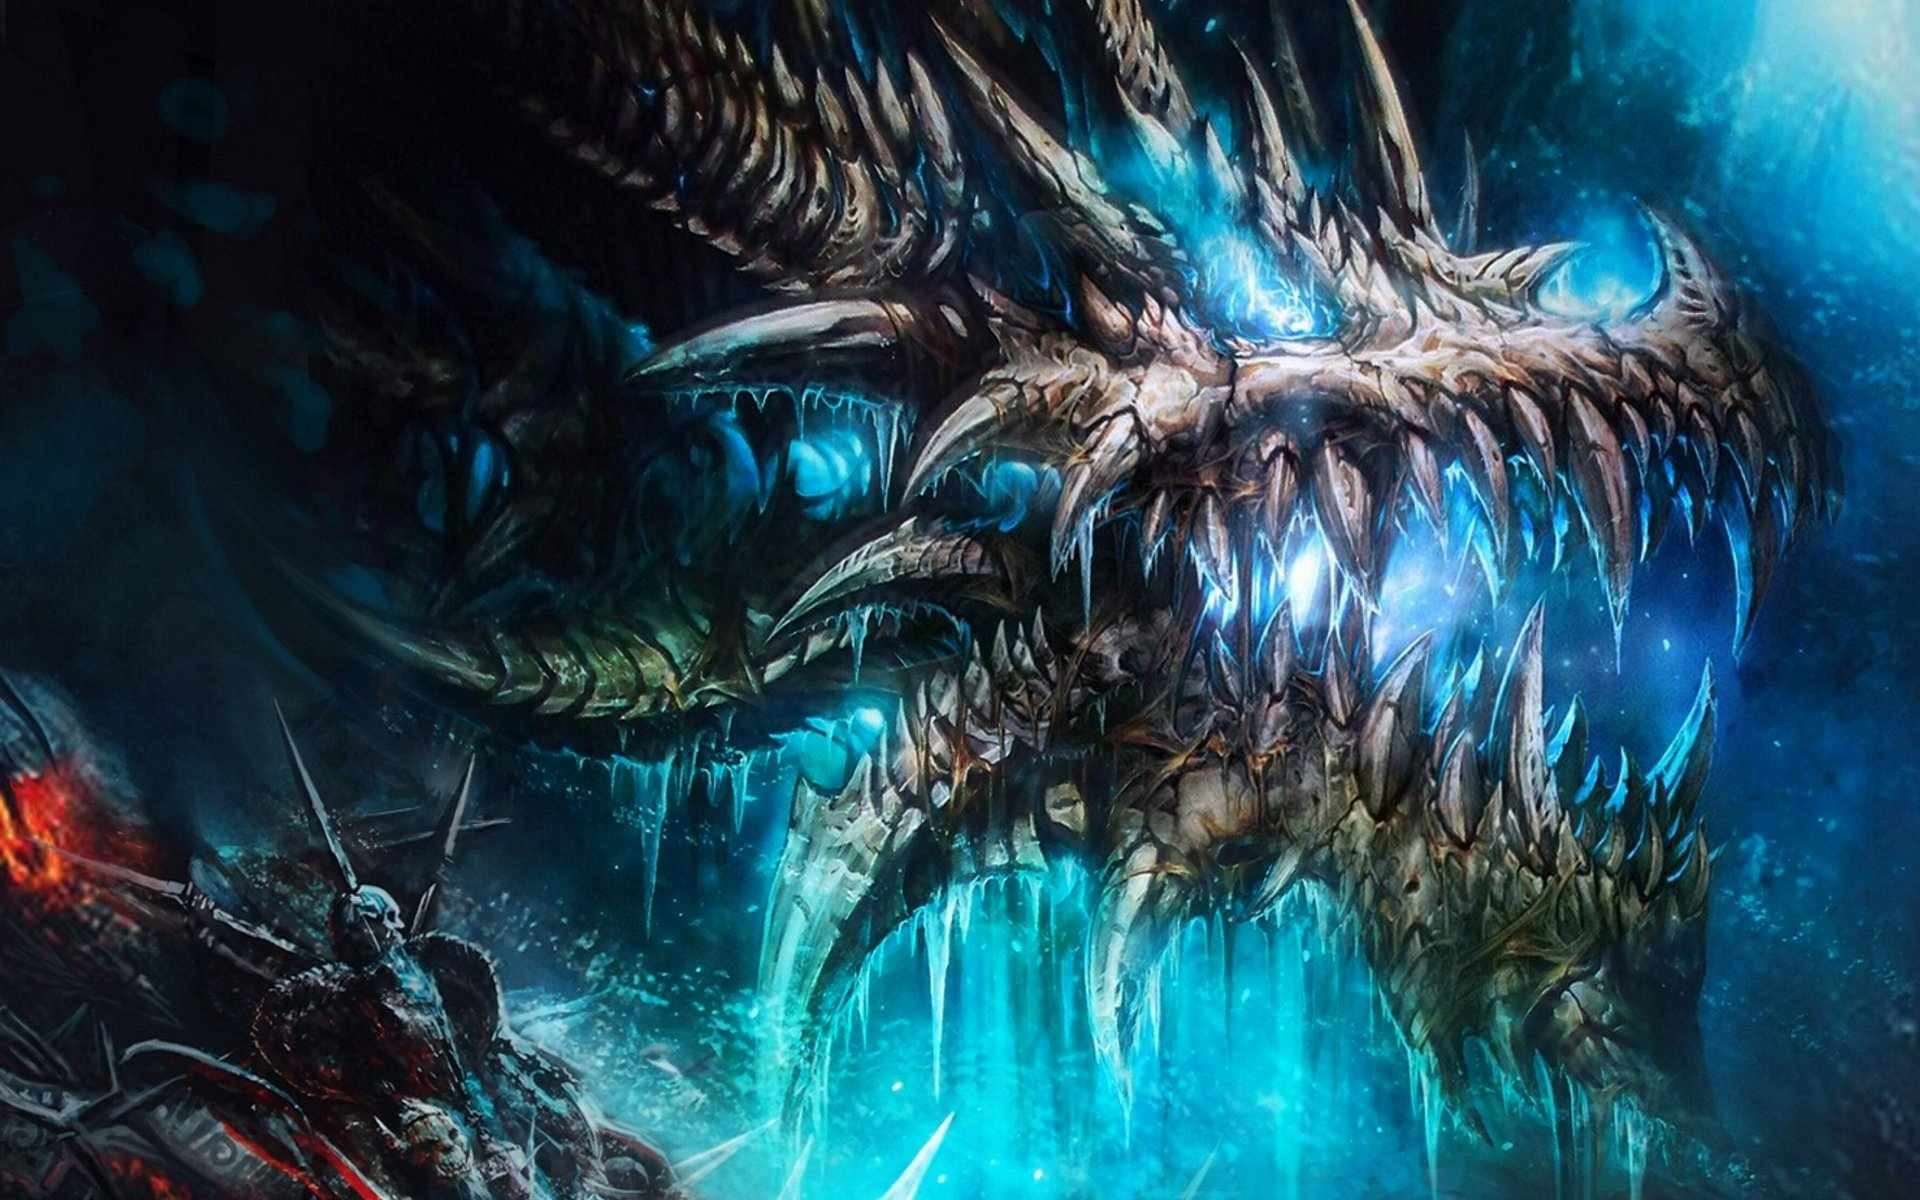 Cool Dragons Wallpaper 62 images 1920x1200